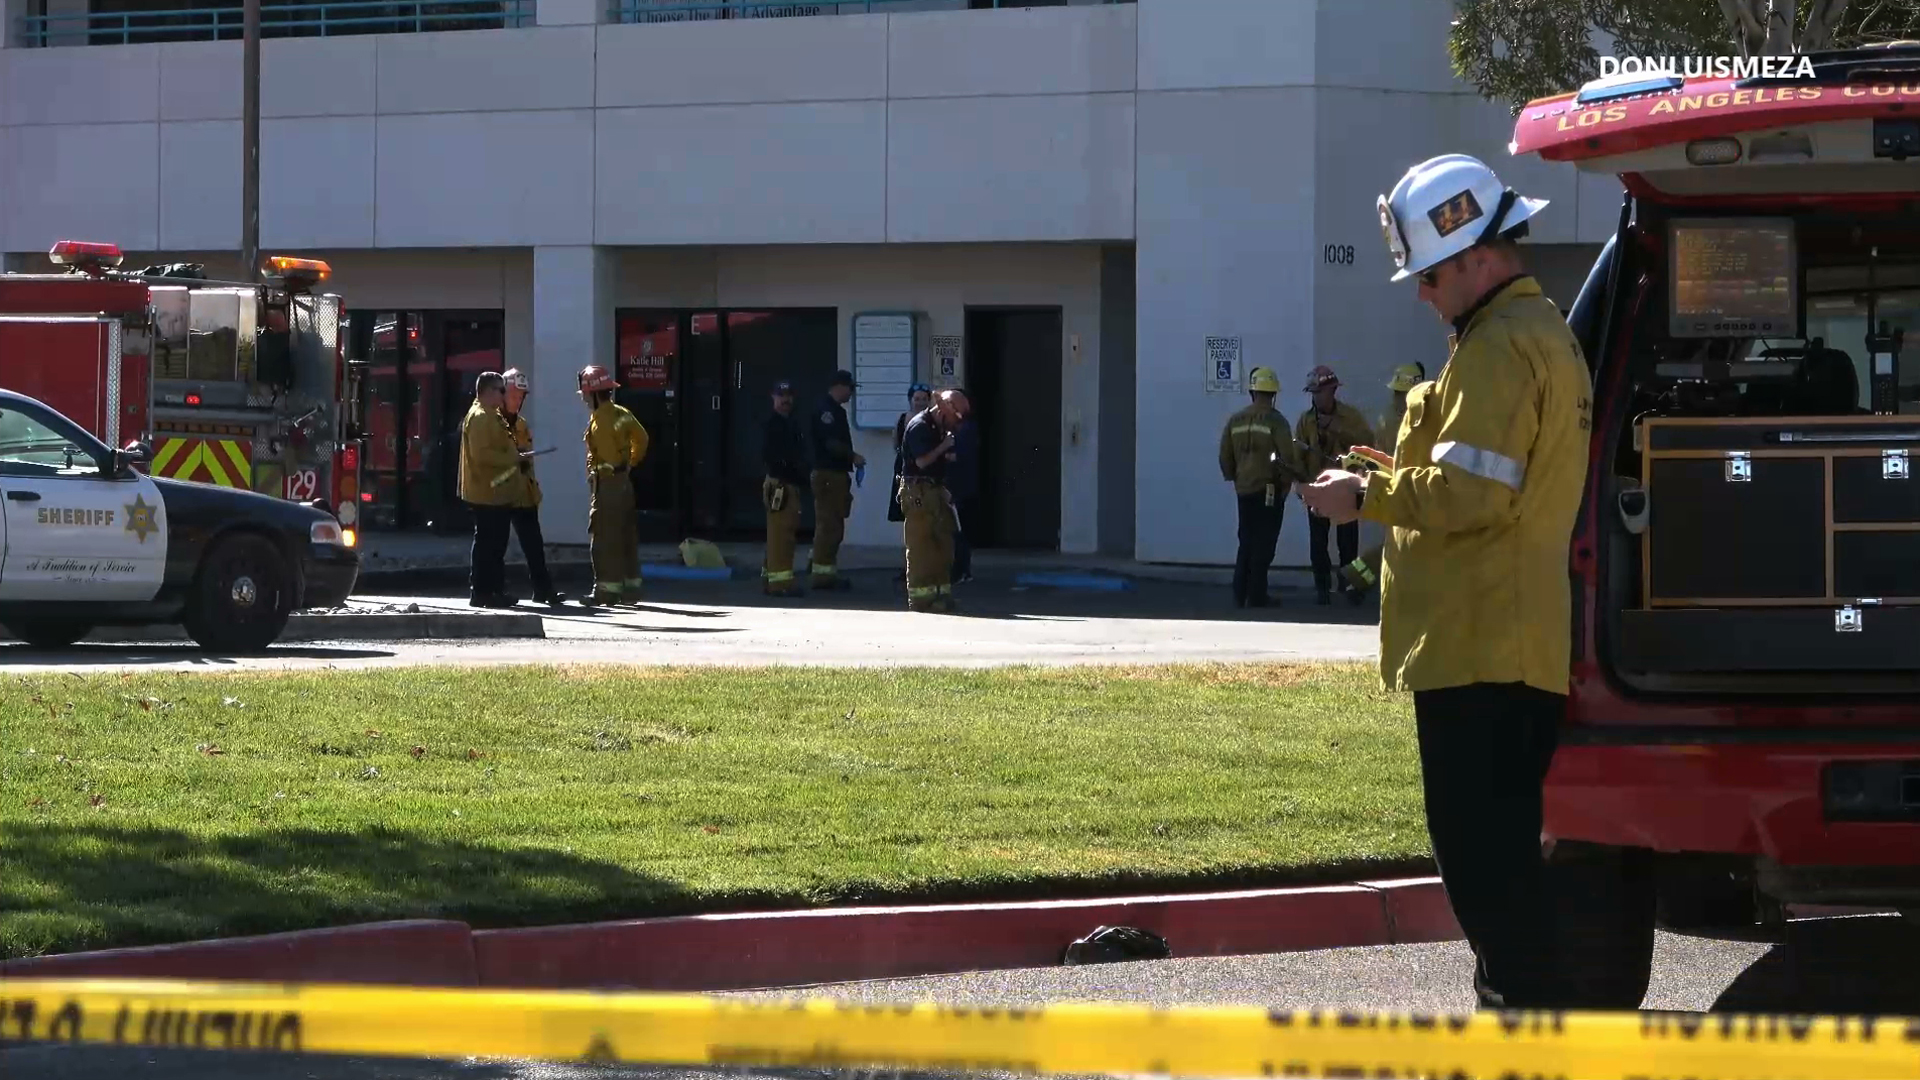 Authorities respond to a hazardous materials call at the Palmdale offices of former Rep. Katie Hill on Nov. 4, 2019. (Credit: Don Luiz Meza)